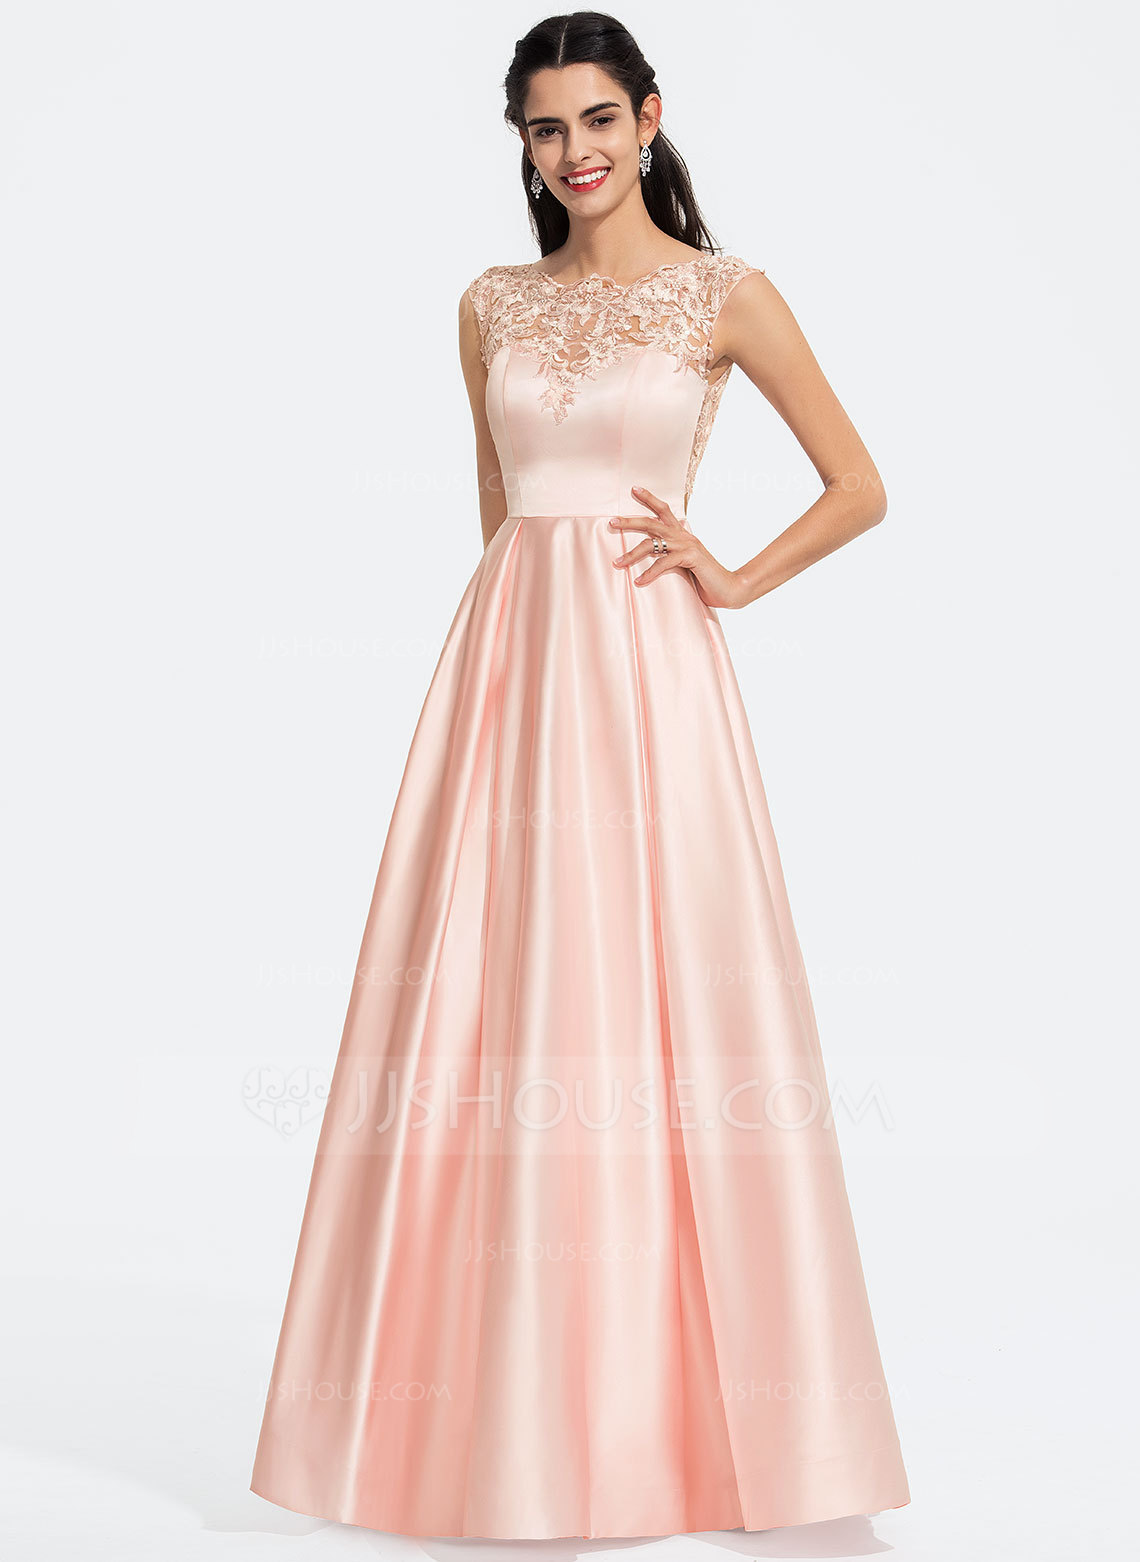 c976d4510374f A-Line Scoop Neck Floor-Length Satin Prom Dresses With Sequins. Loading zoom